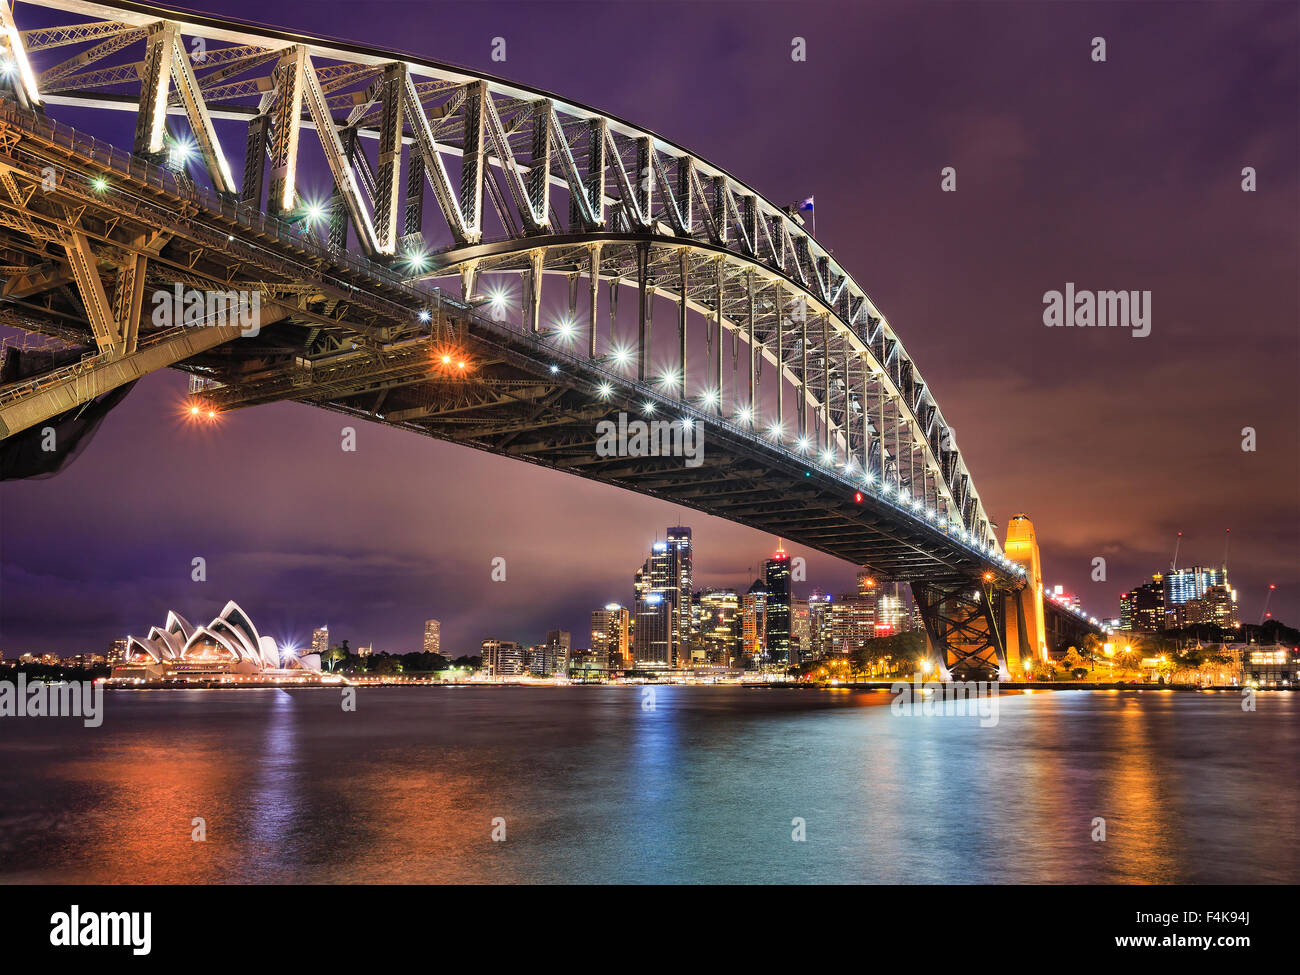 East side of Sydney harbour bridge at sunset with bright illumination of steel arch and columns reflecting in the - Stock Image